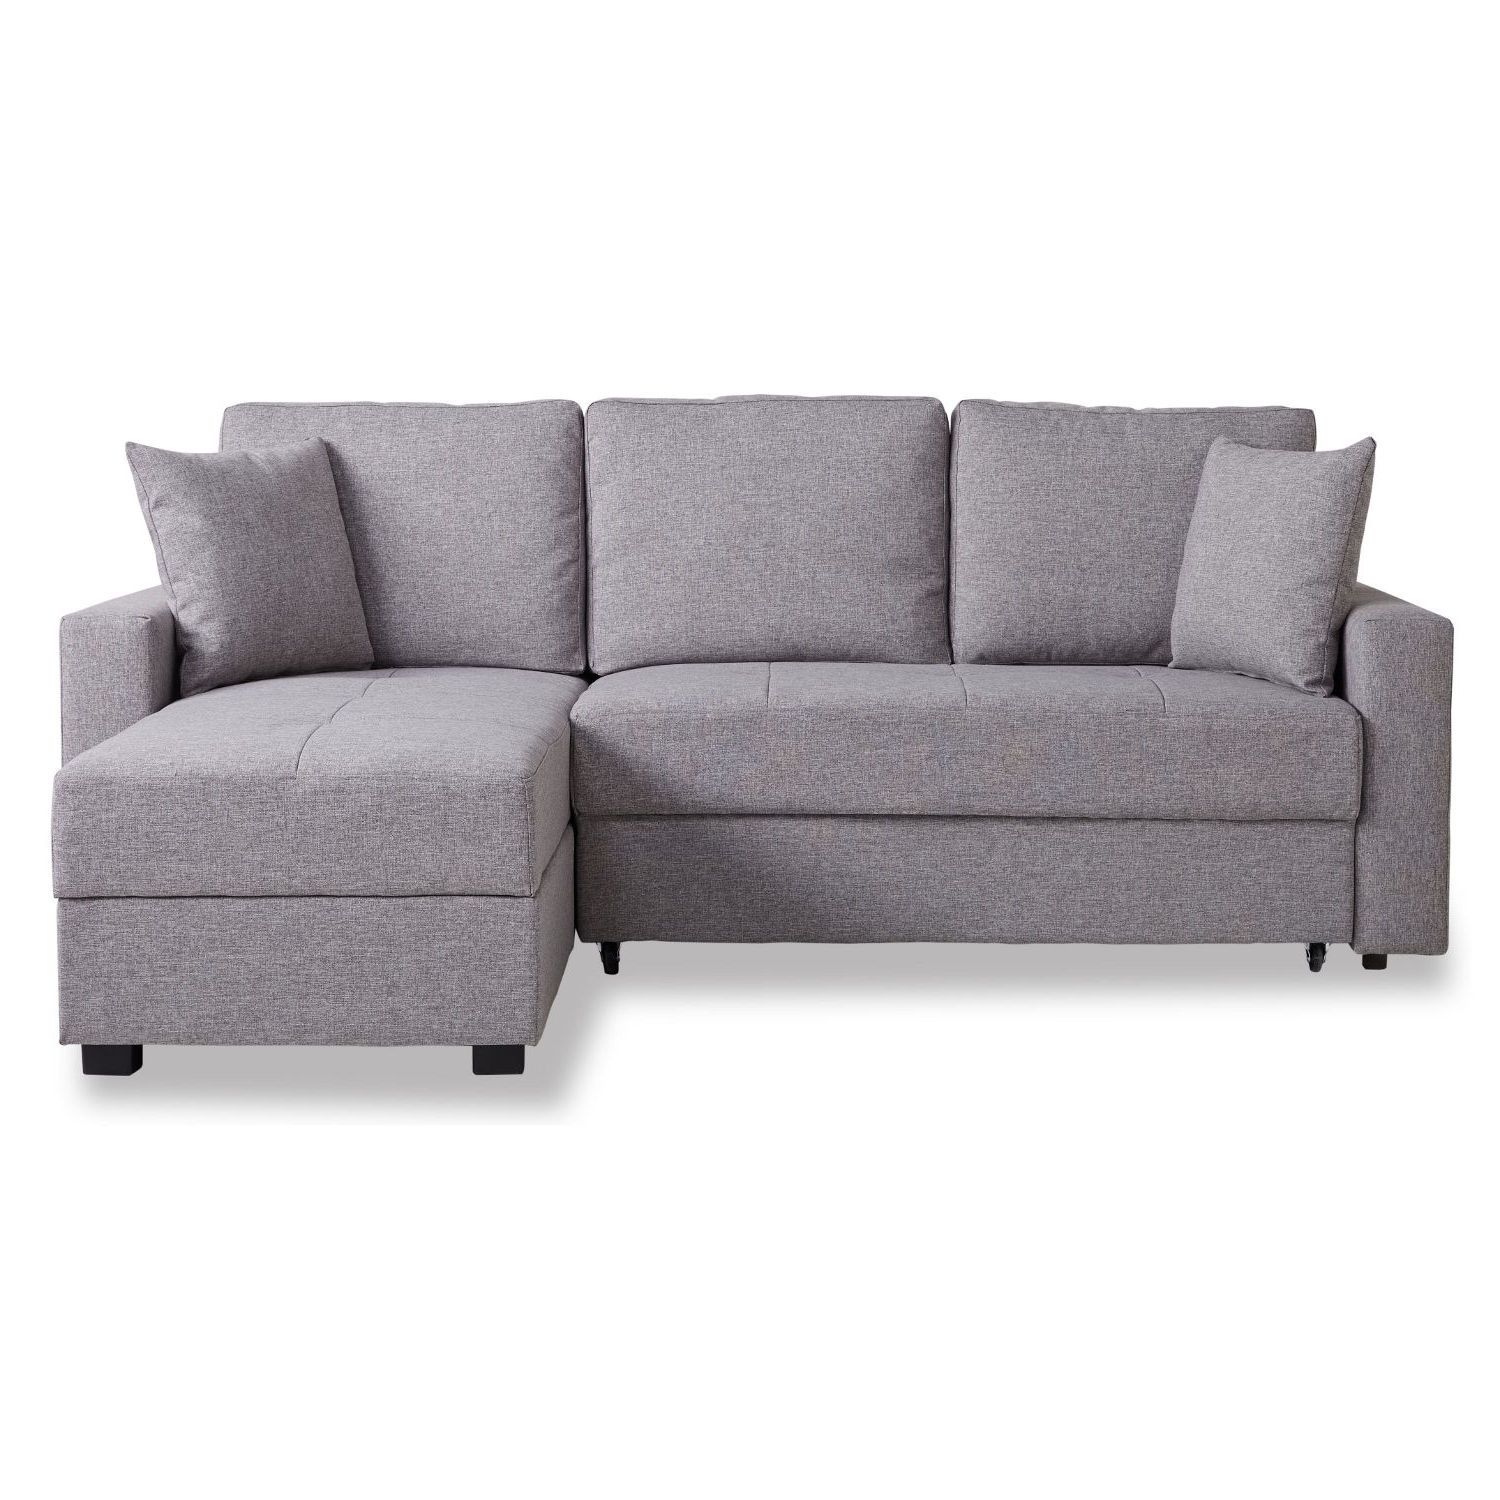 Casablanca Fabric Platform Sofa Bed With Storage Next Day Delivery